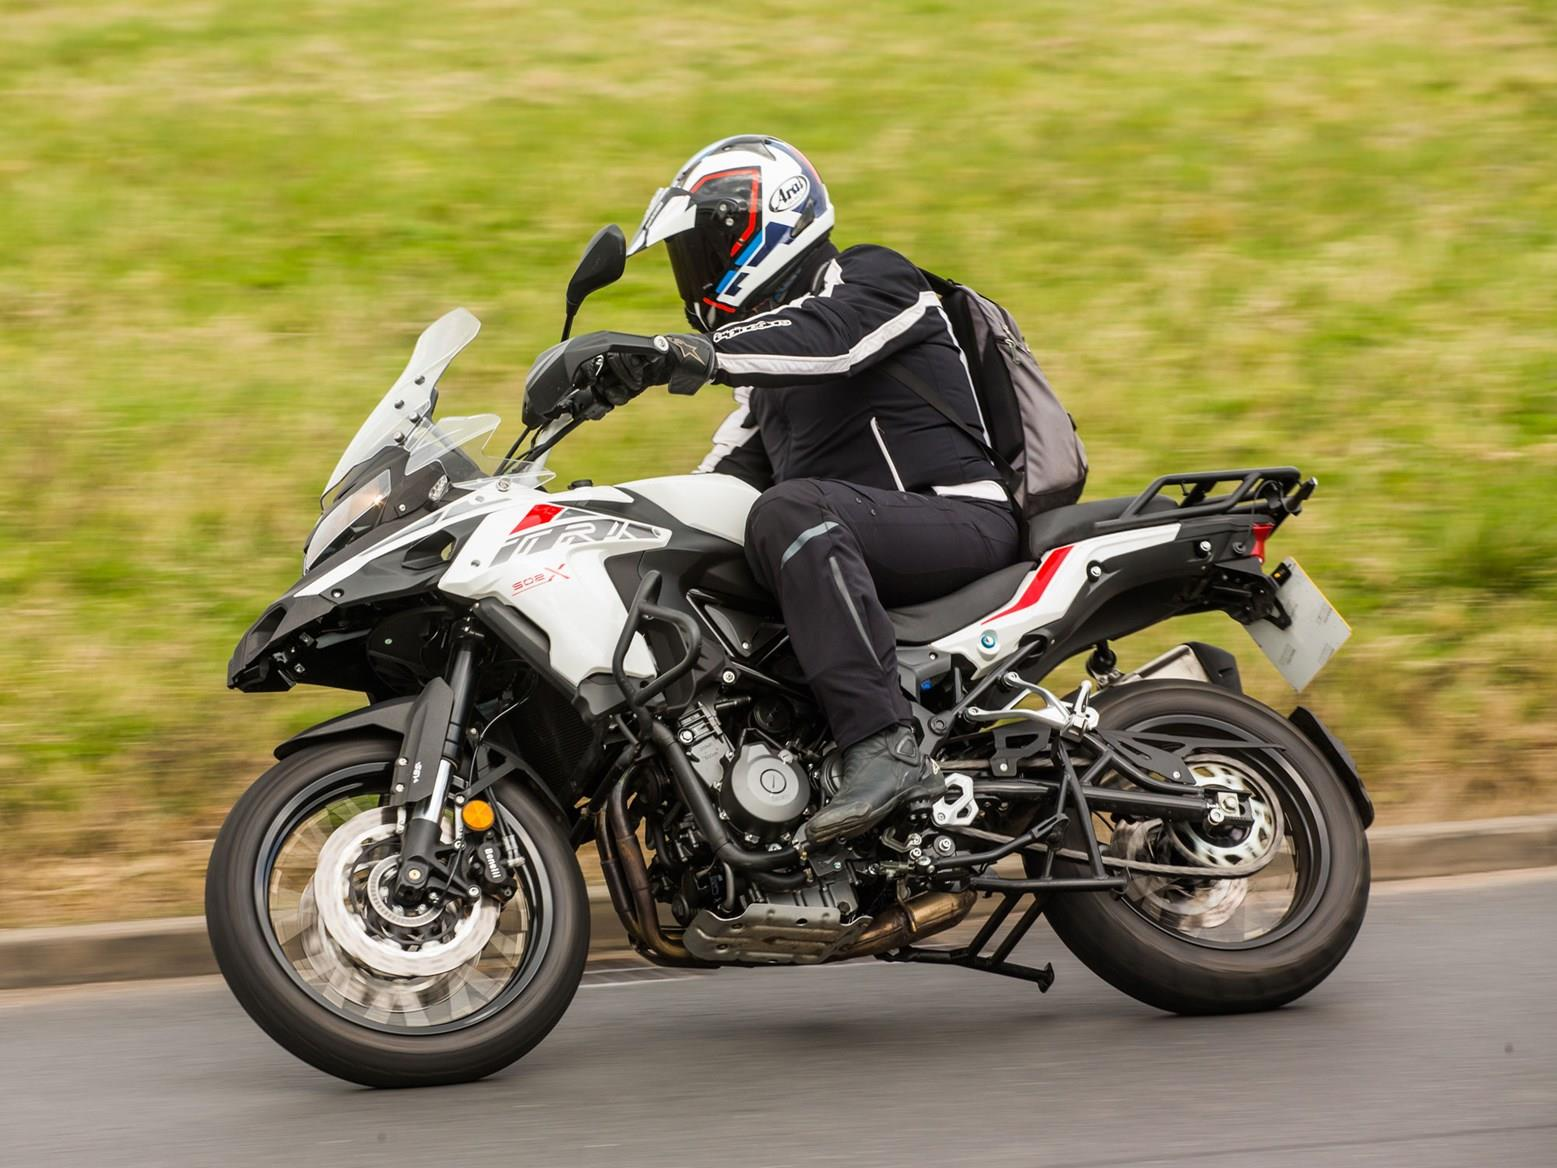 Cornering on the Benelli TRK 502